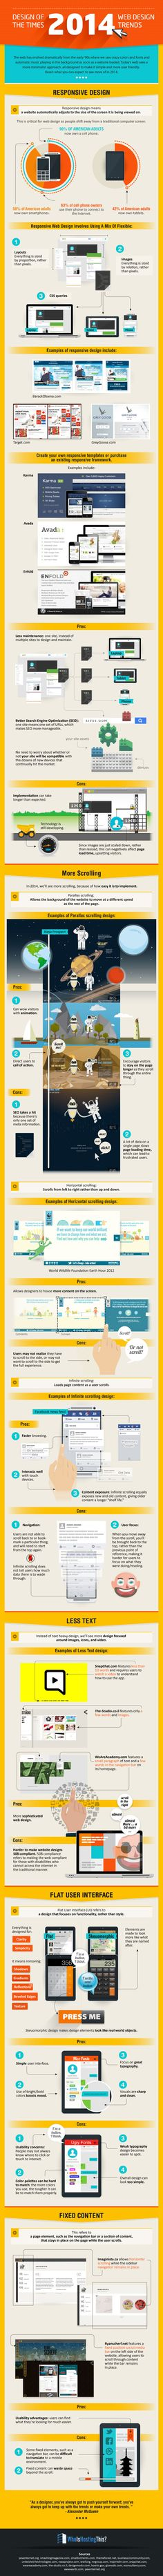 Latest Web Design Trends [Infographic] - DesignNewz